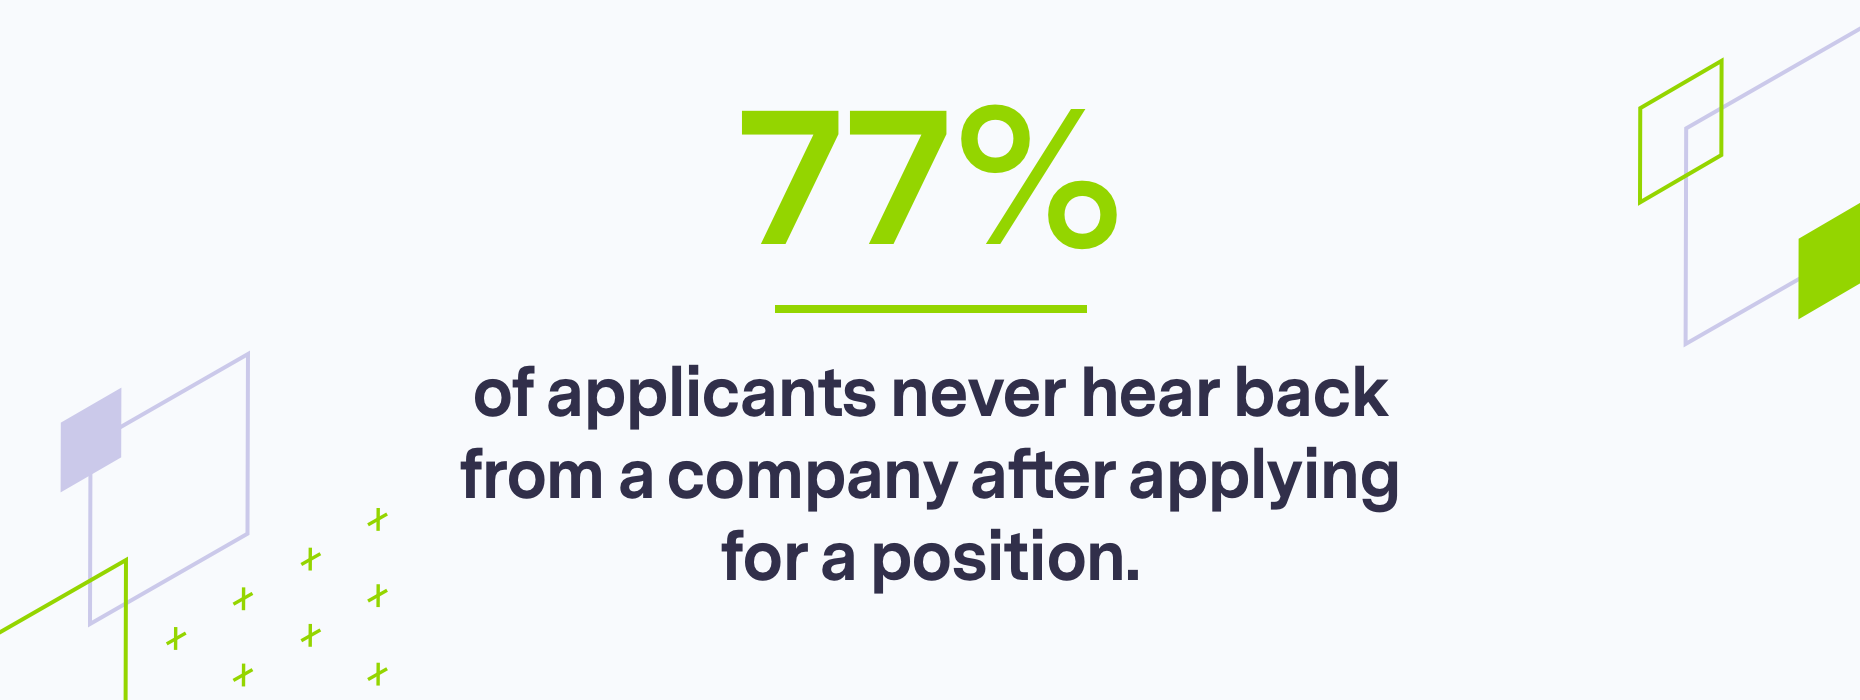 stats on candidates who don't hear back from companies